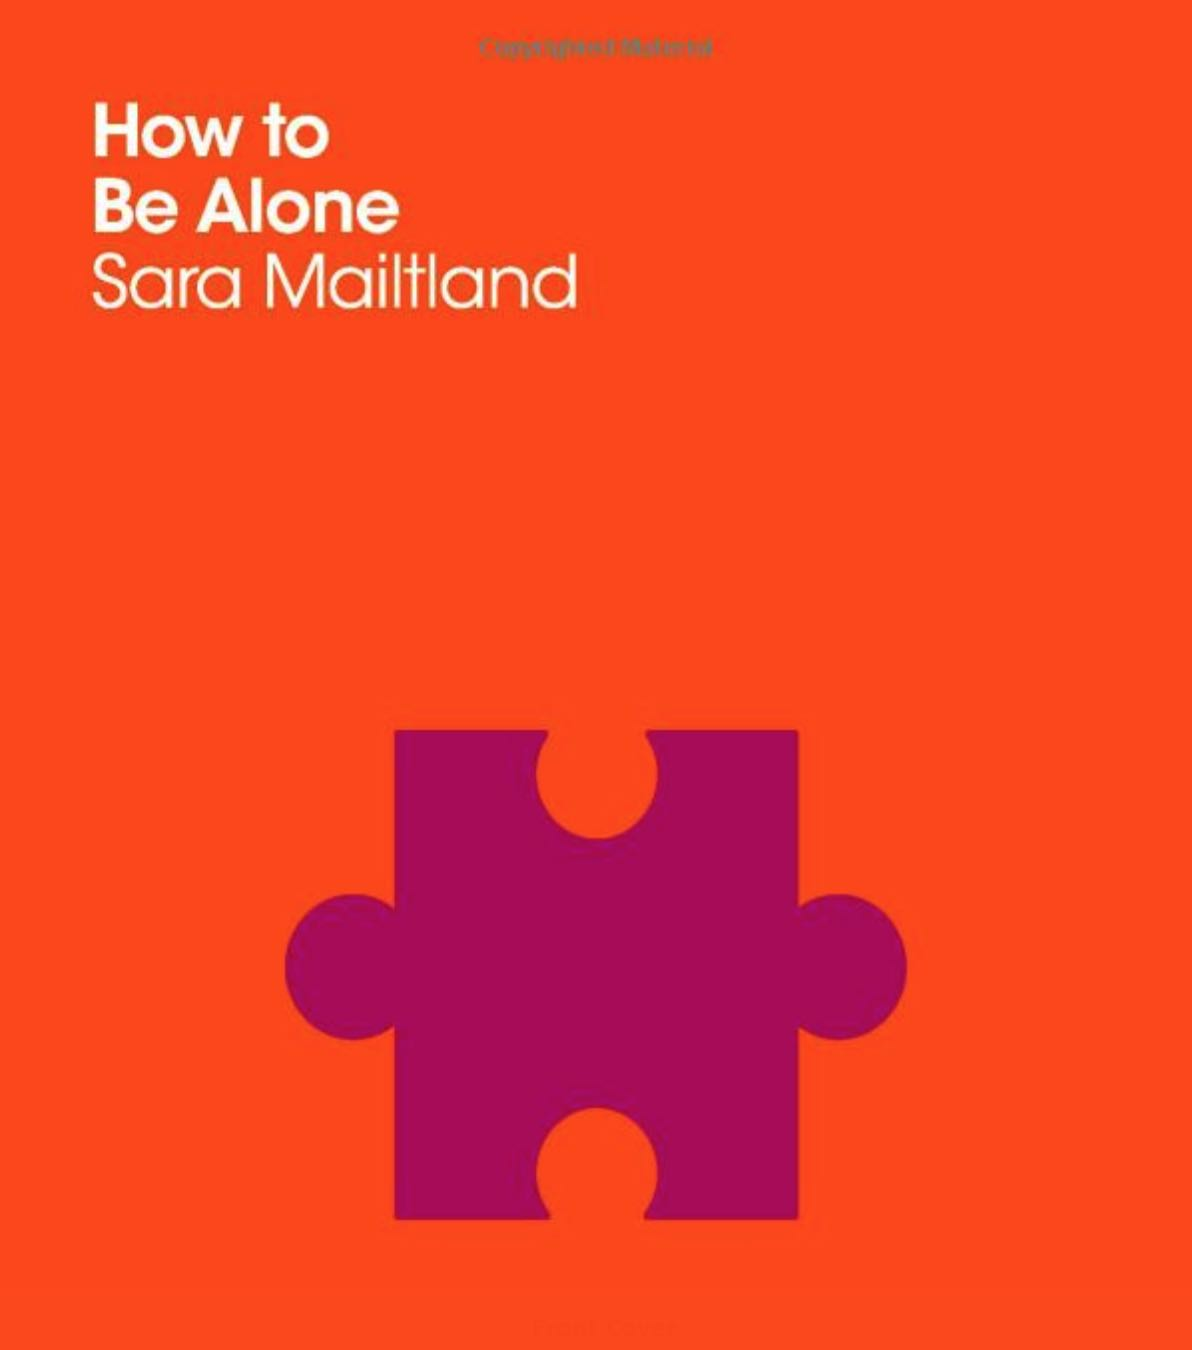 How to Be Alone by Sara Maitland